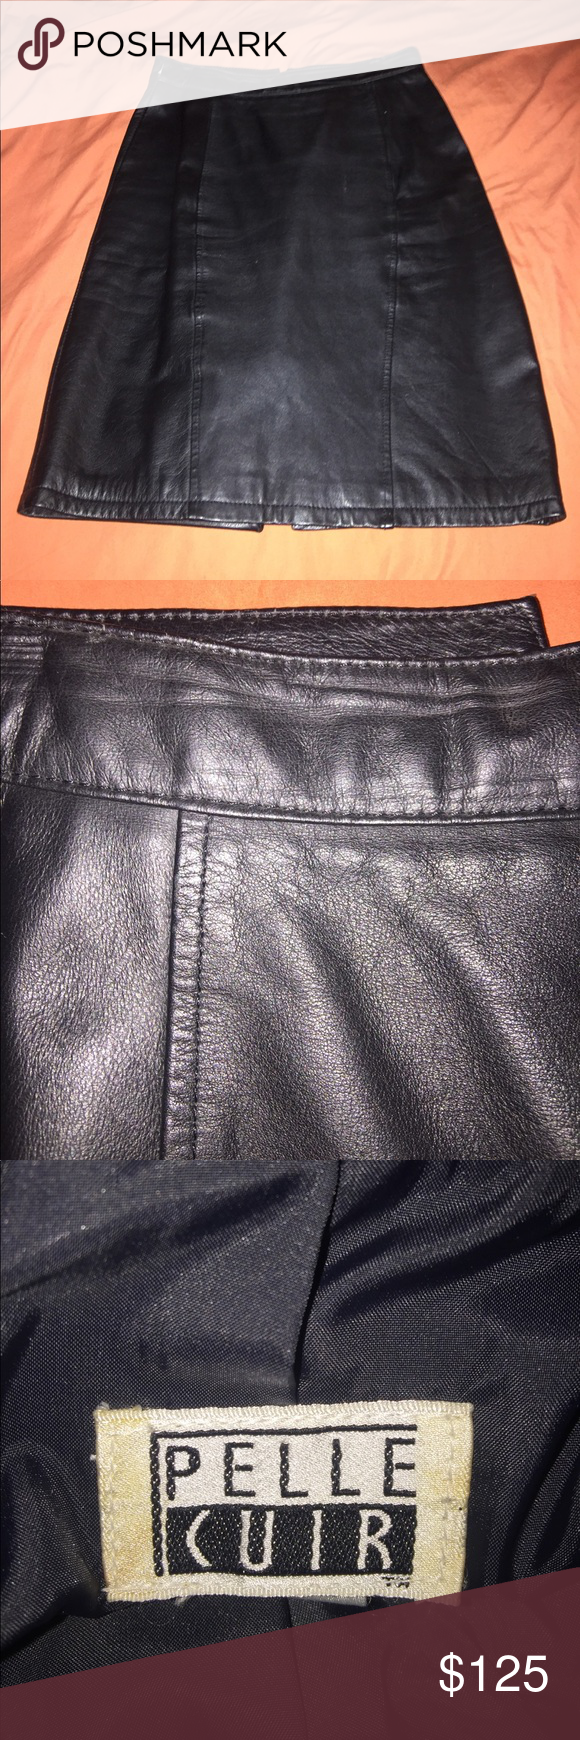 I just added this listing on Poshmark: Pelle Cuir vintage 100% leather black pencil skirt. #shopmycloset #poshmark #fashion #shopping #style #forsale #Pelle Cuir #Dresses & Skirts